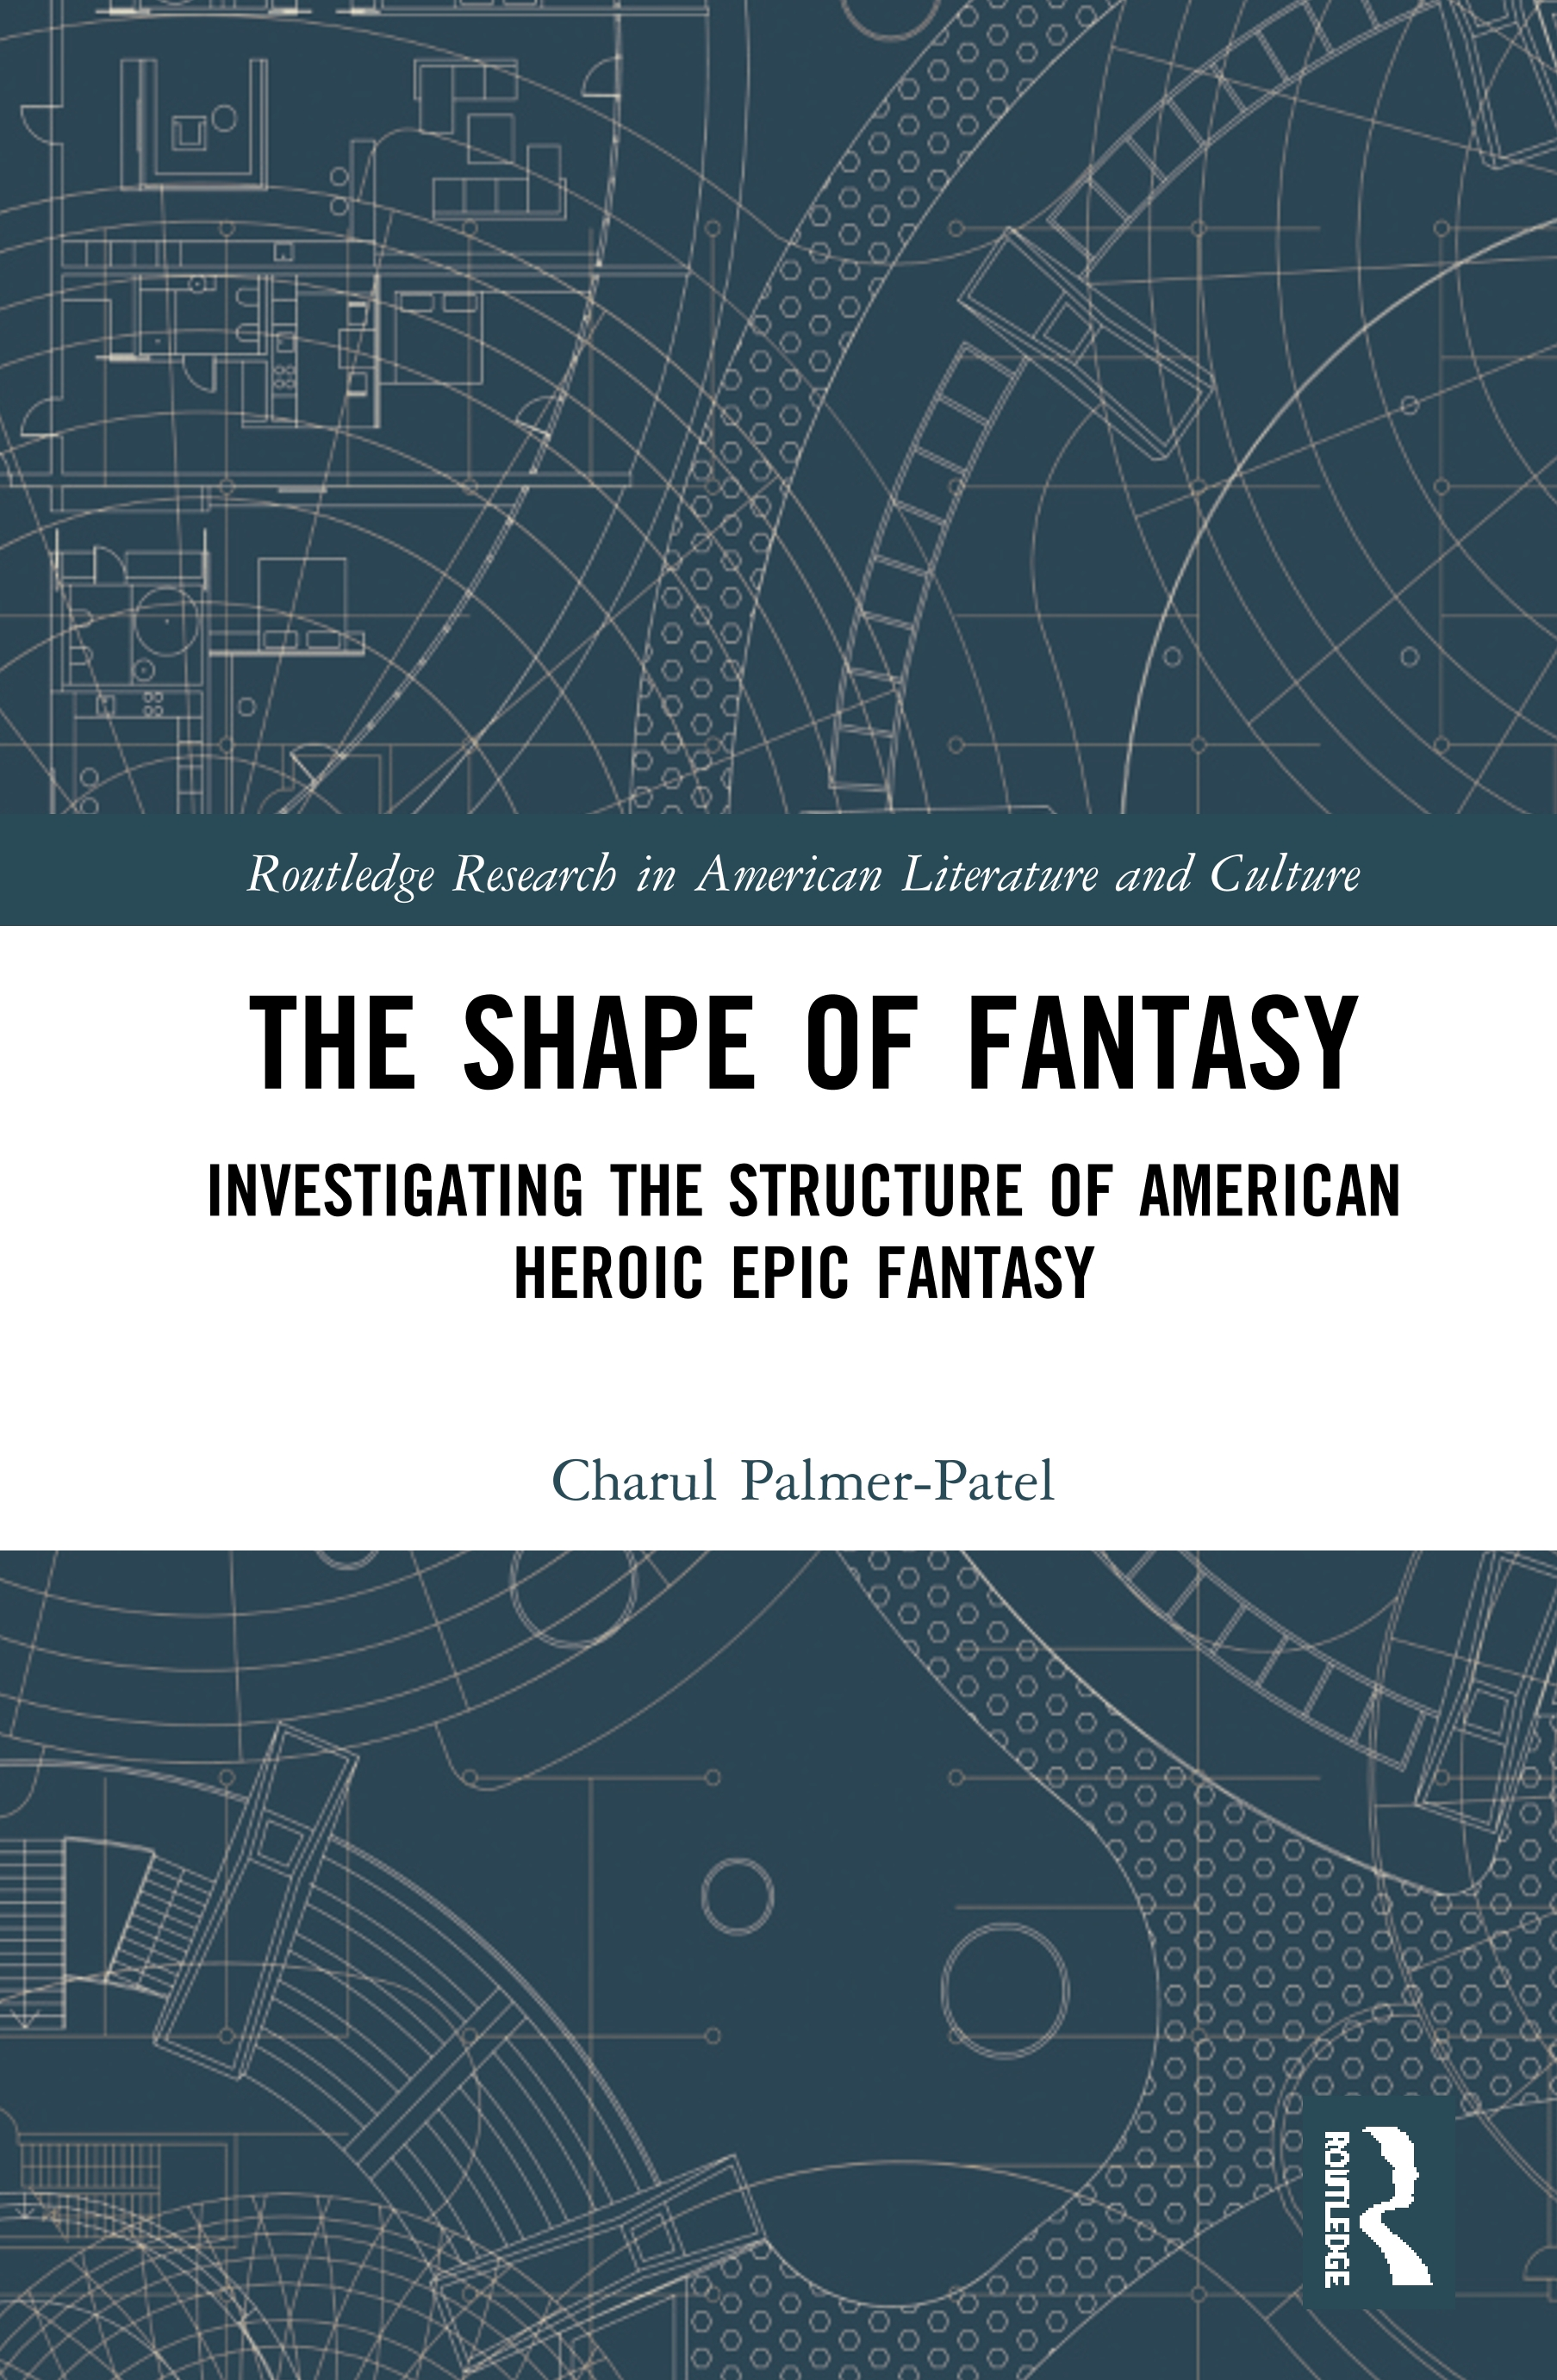 The Shape of Fantasy: Investigating the Structure American Heroic Epic Fantasy, 1st Edition (Hardback) book cover